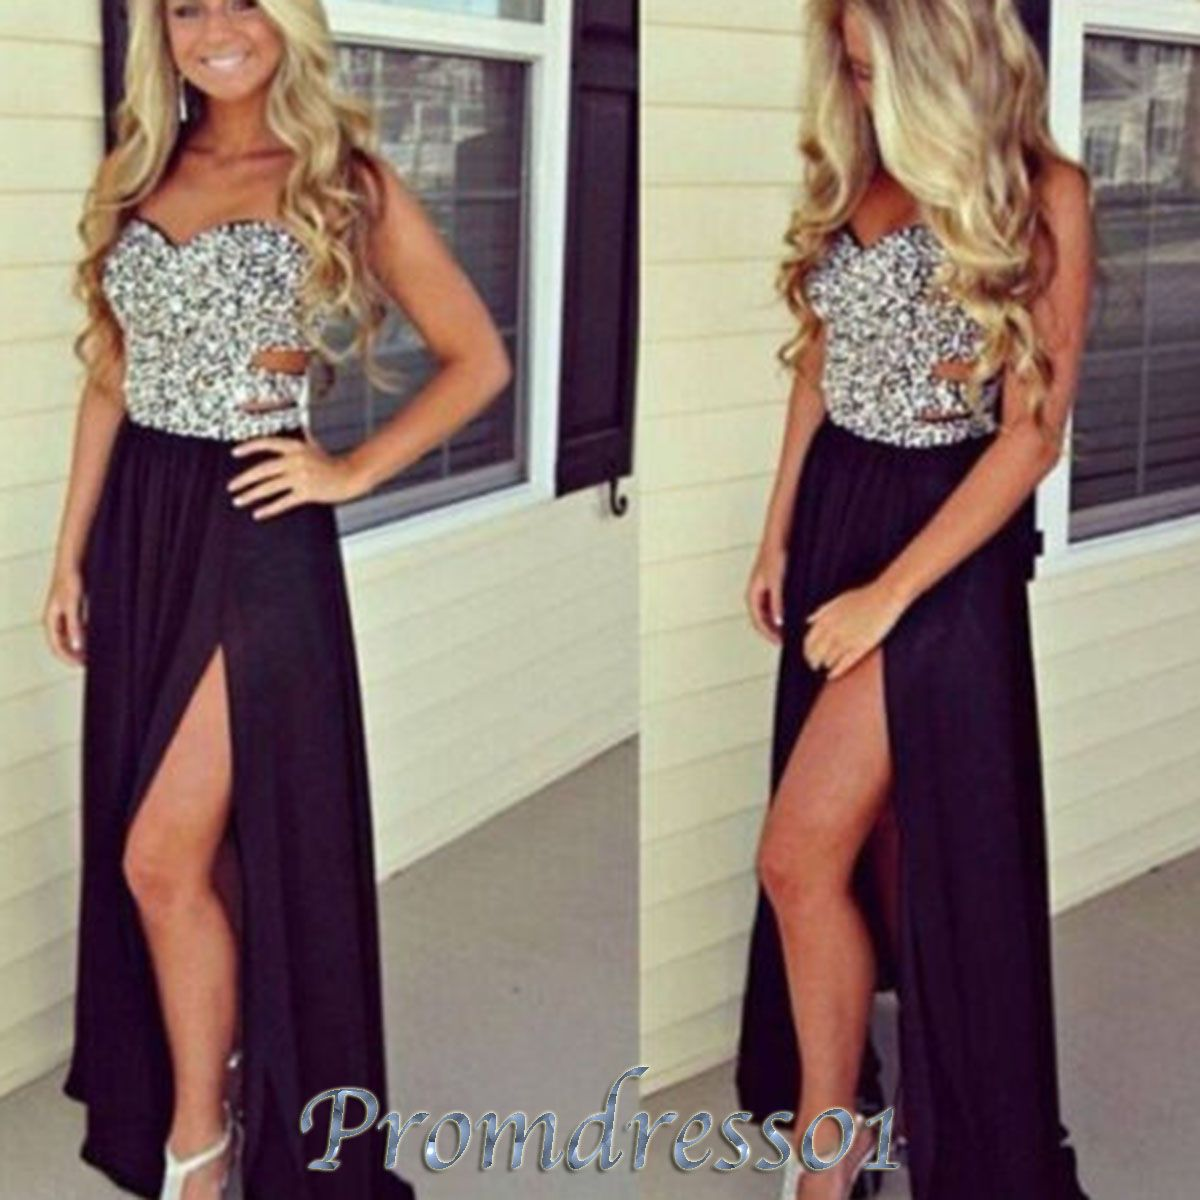 Black and gold prom dresses tumblr